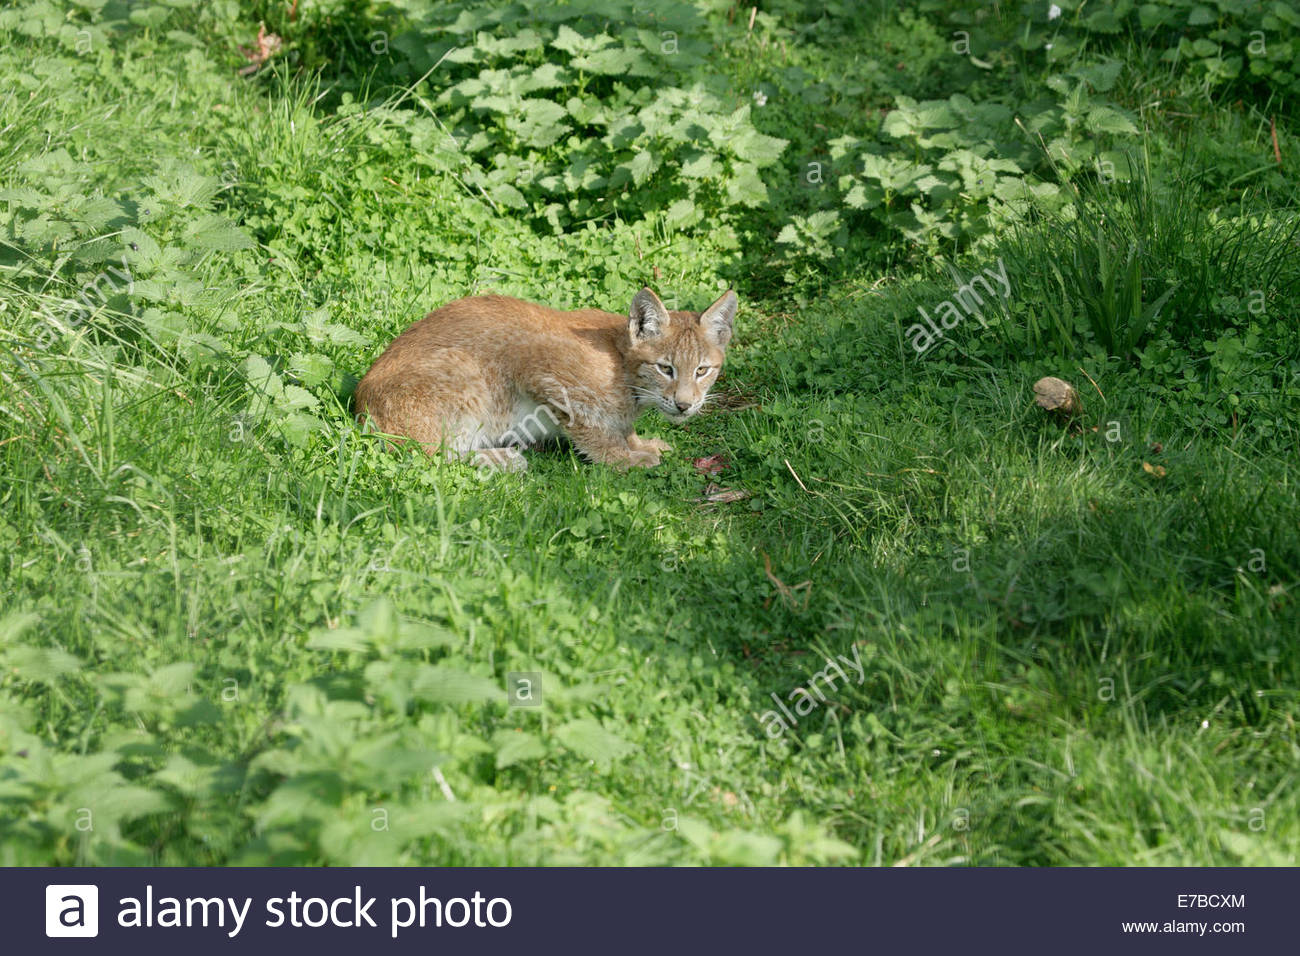 Kincraig, Kingussie, Highlands, UK. 12th September 2014. Lynx cub crouching in the early morning sunshine. Northern - Stock Image